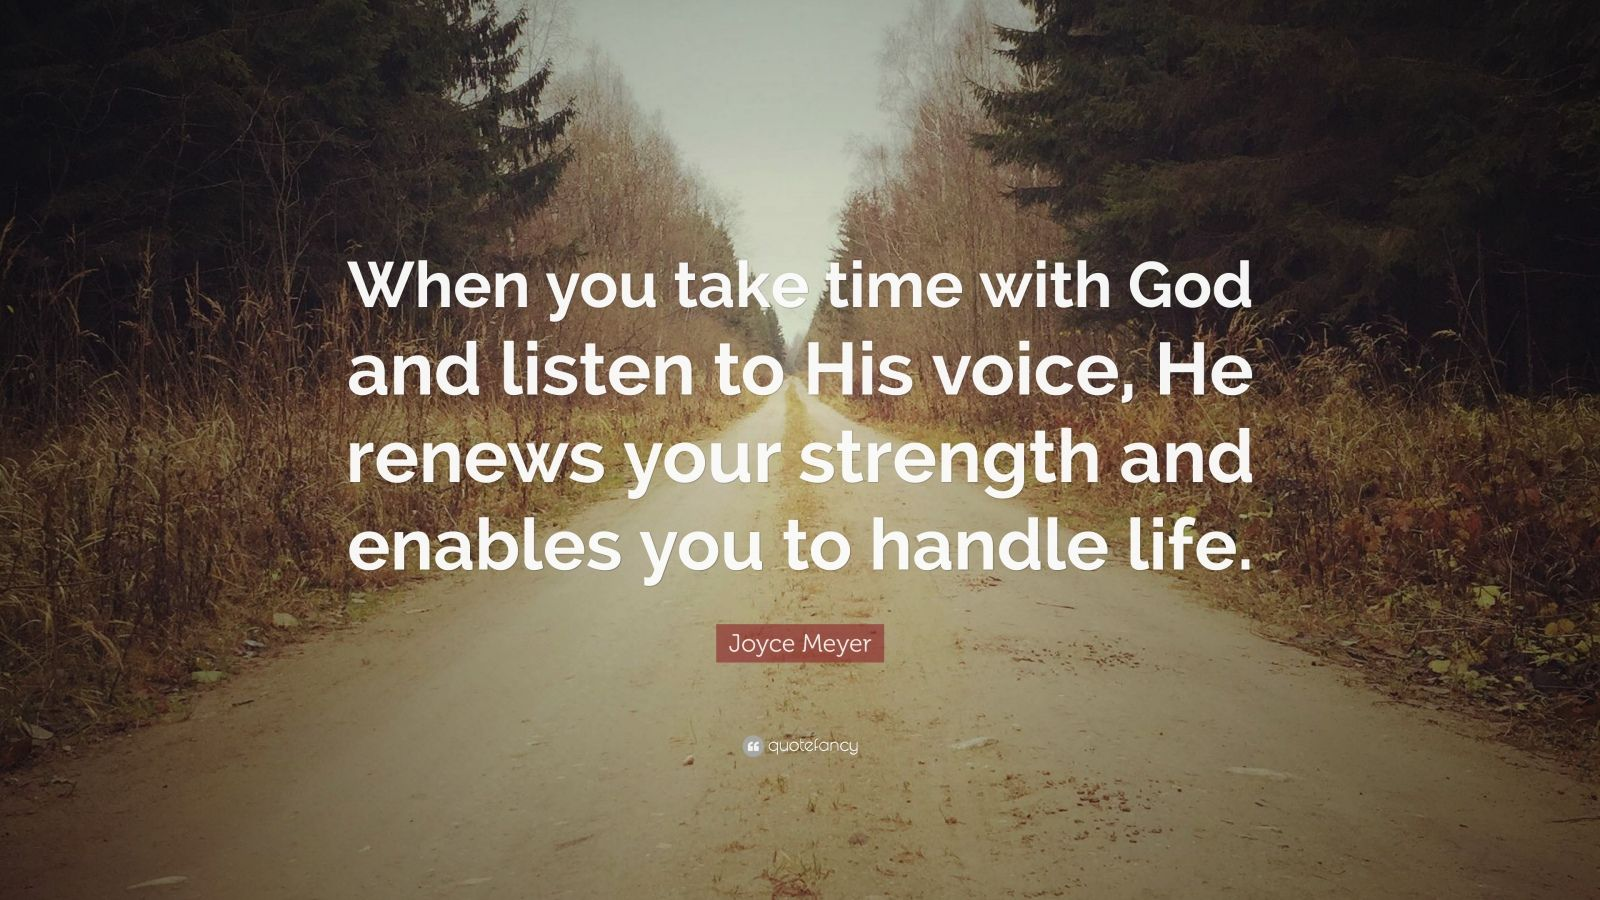 """Joyce Meyer Quote: """"When you take time with God and listen to His voice, He renews your strength and enables you to handle life."""""""